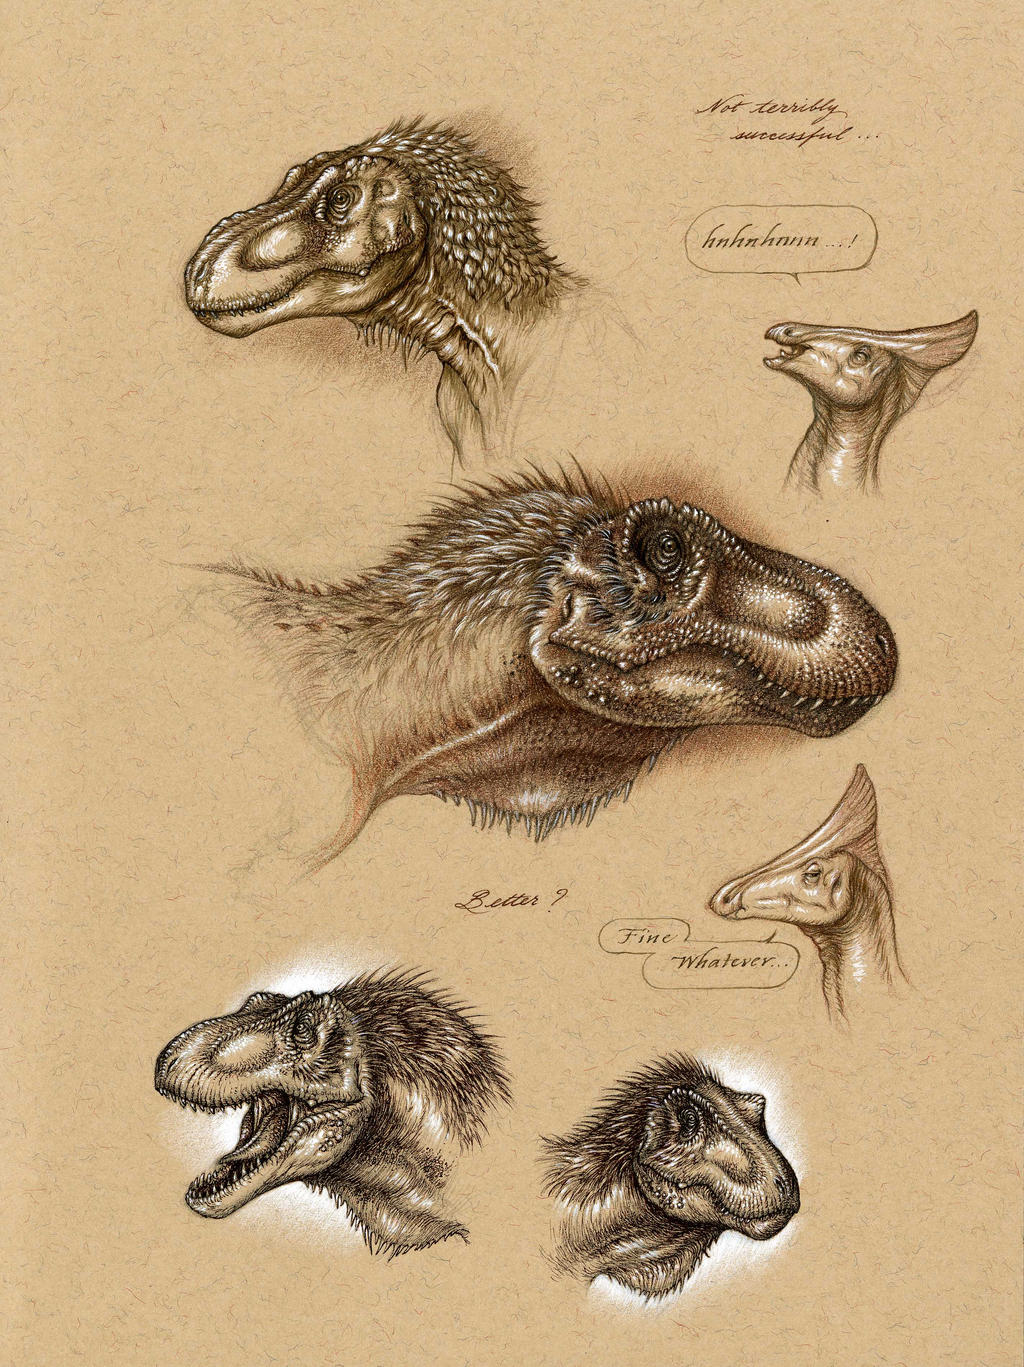 Tarbosaurus Head Studies by Himmapaan